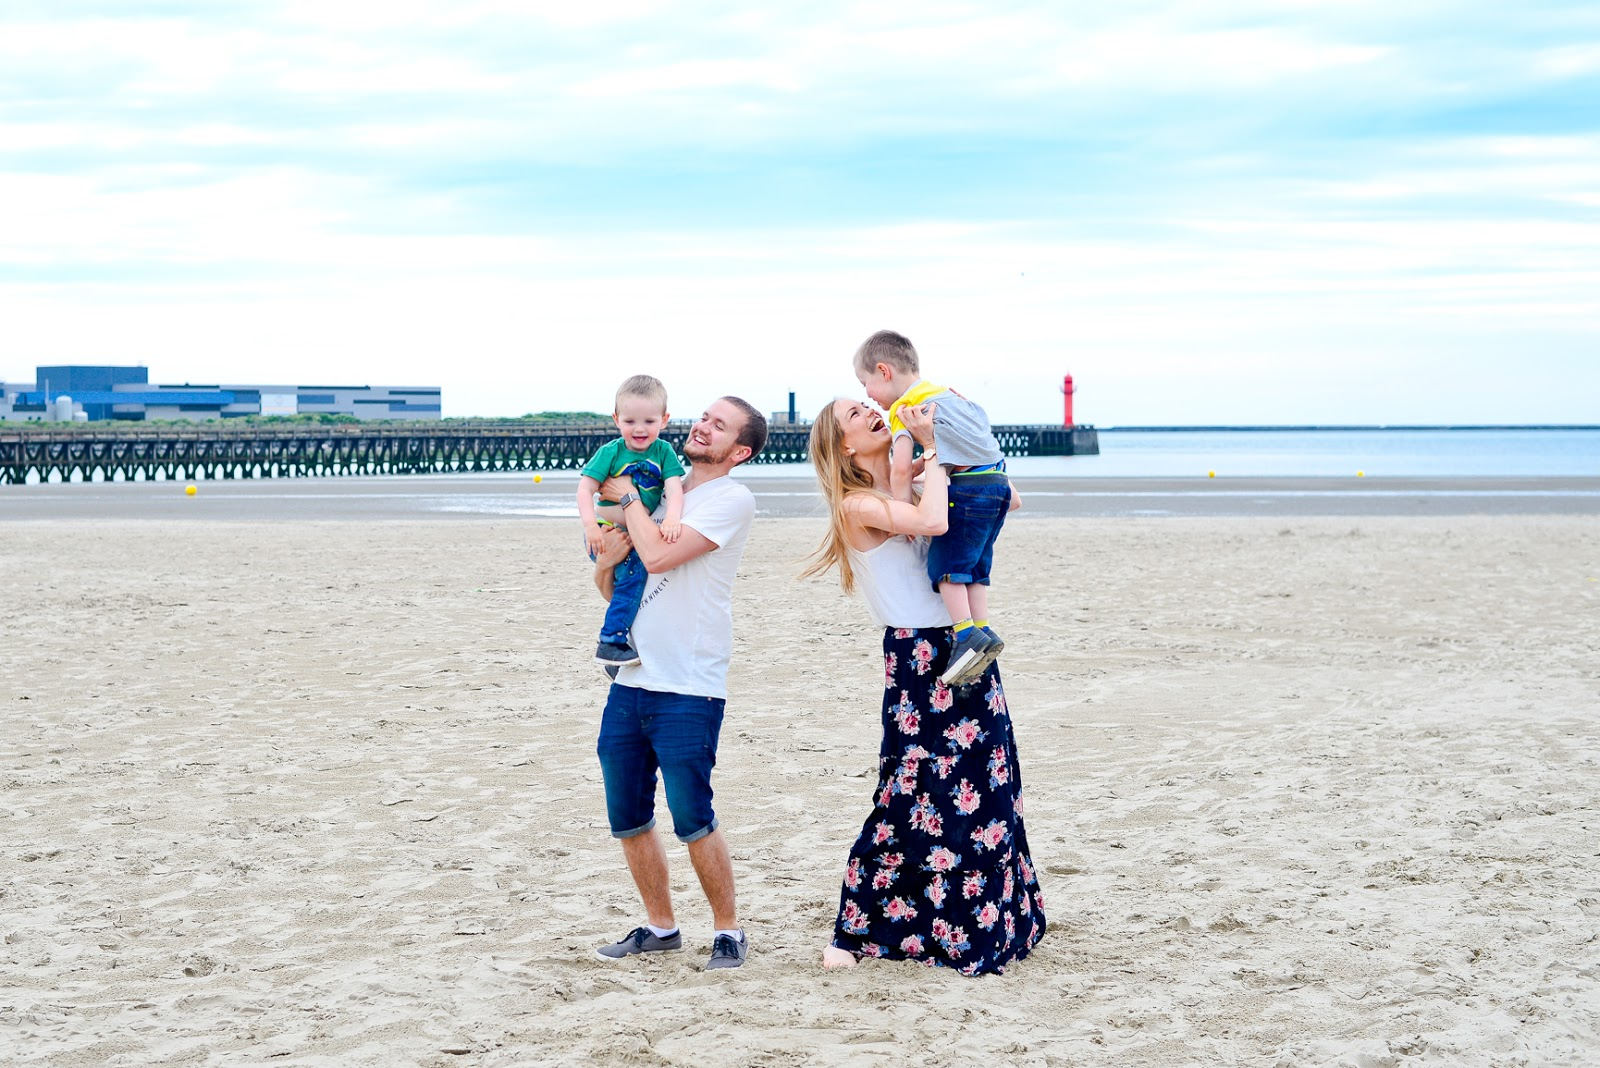 family travel blogger, Family road trip, road trip with toddlers, eurotunnel road trip, eurotunnel, taking kids to france, things to do in france with toddlers, nausicaa, boulogne see mer,